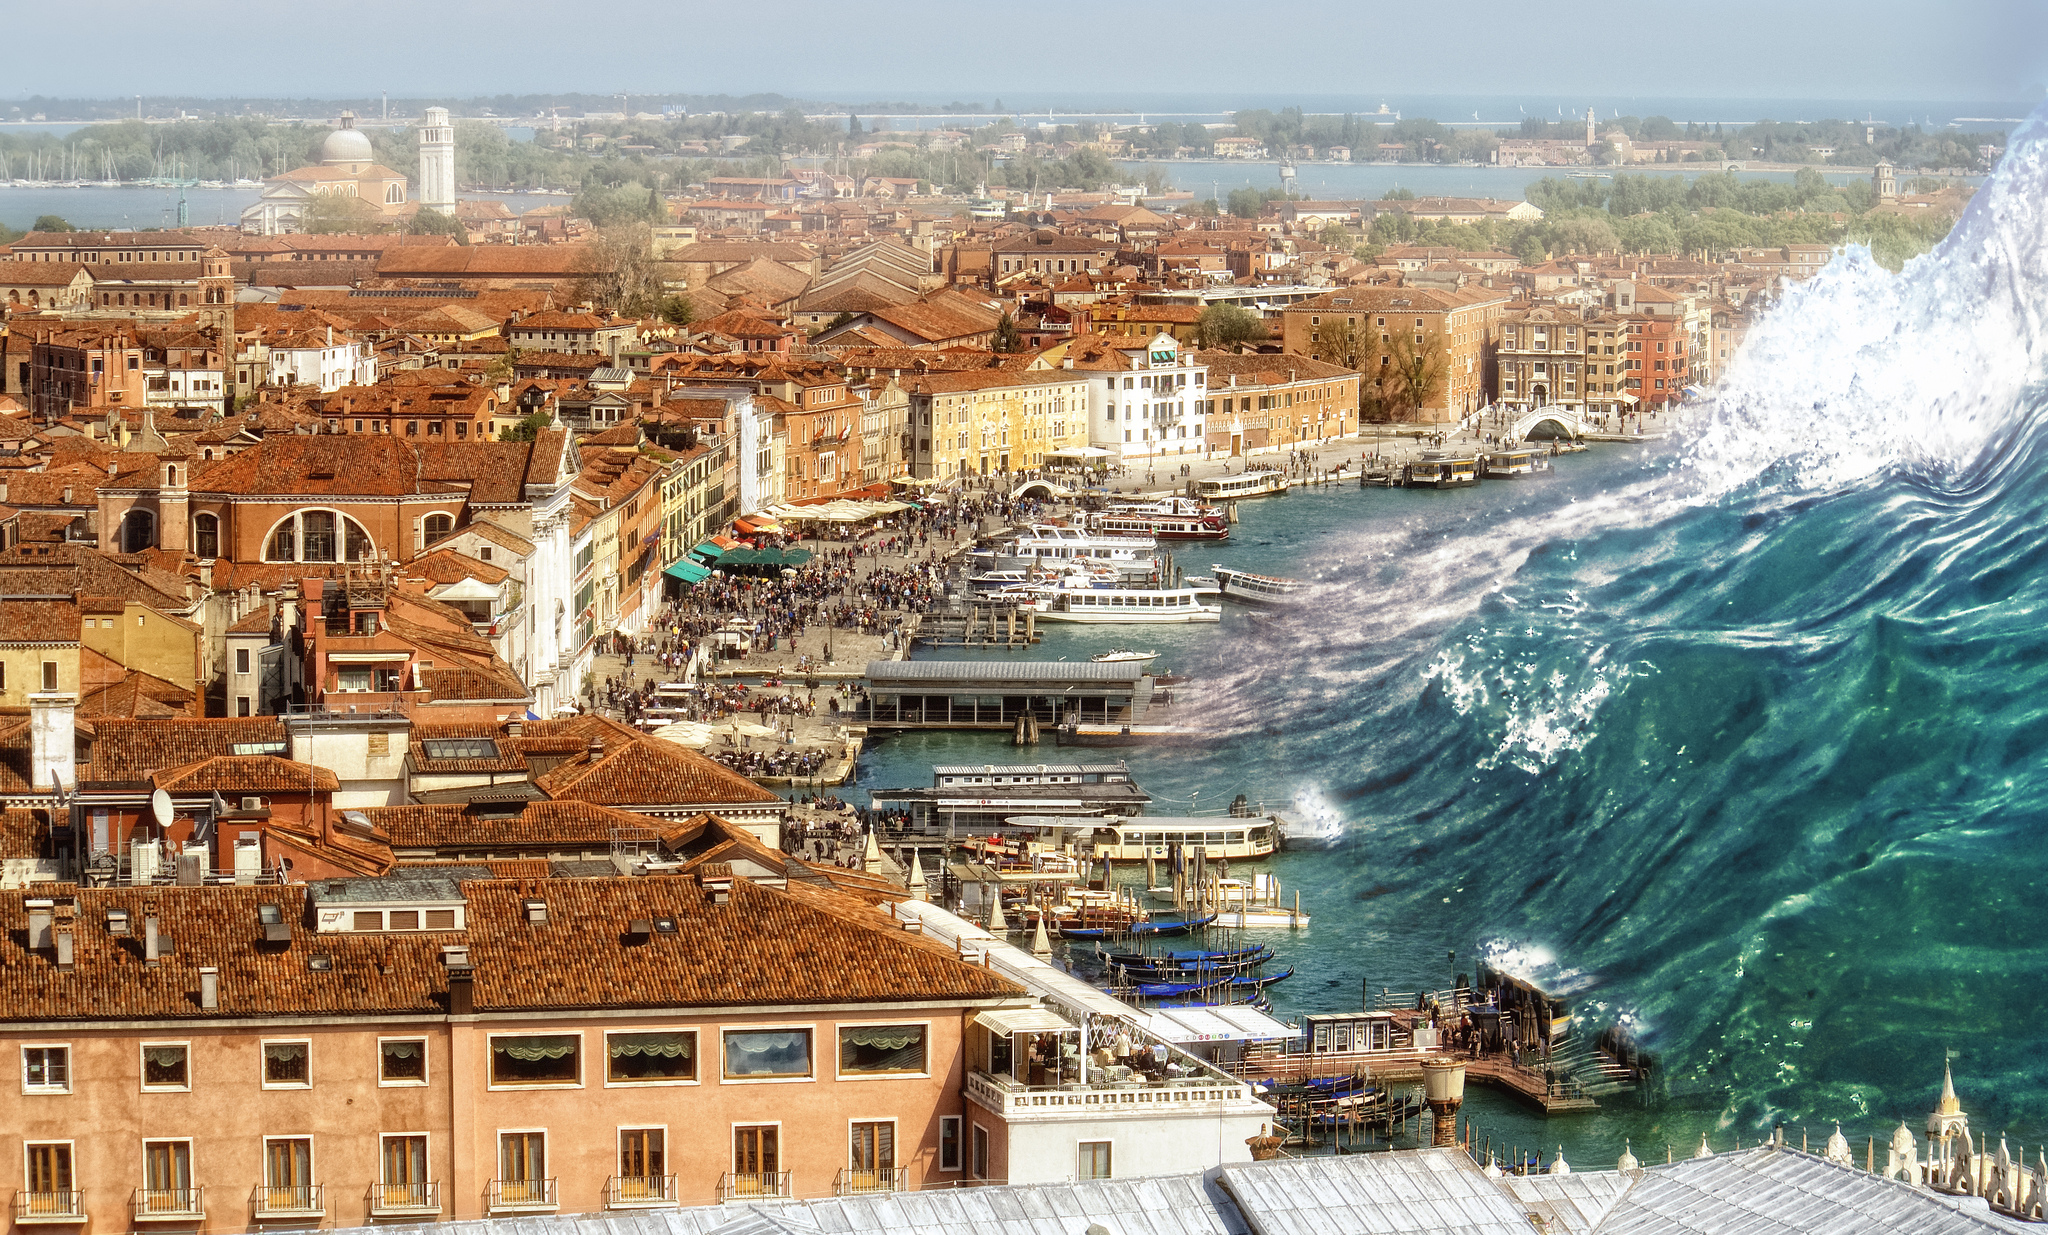 tsunami approaching venice italy hd wallpaper background image